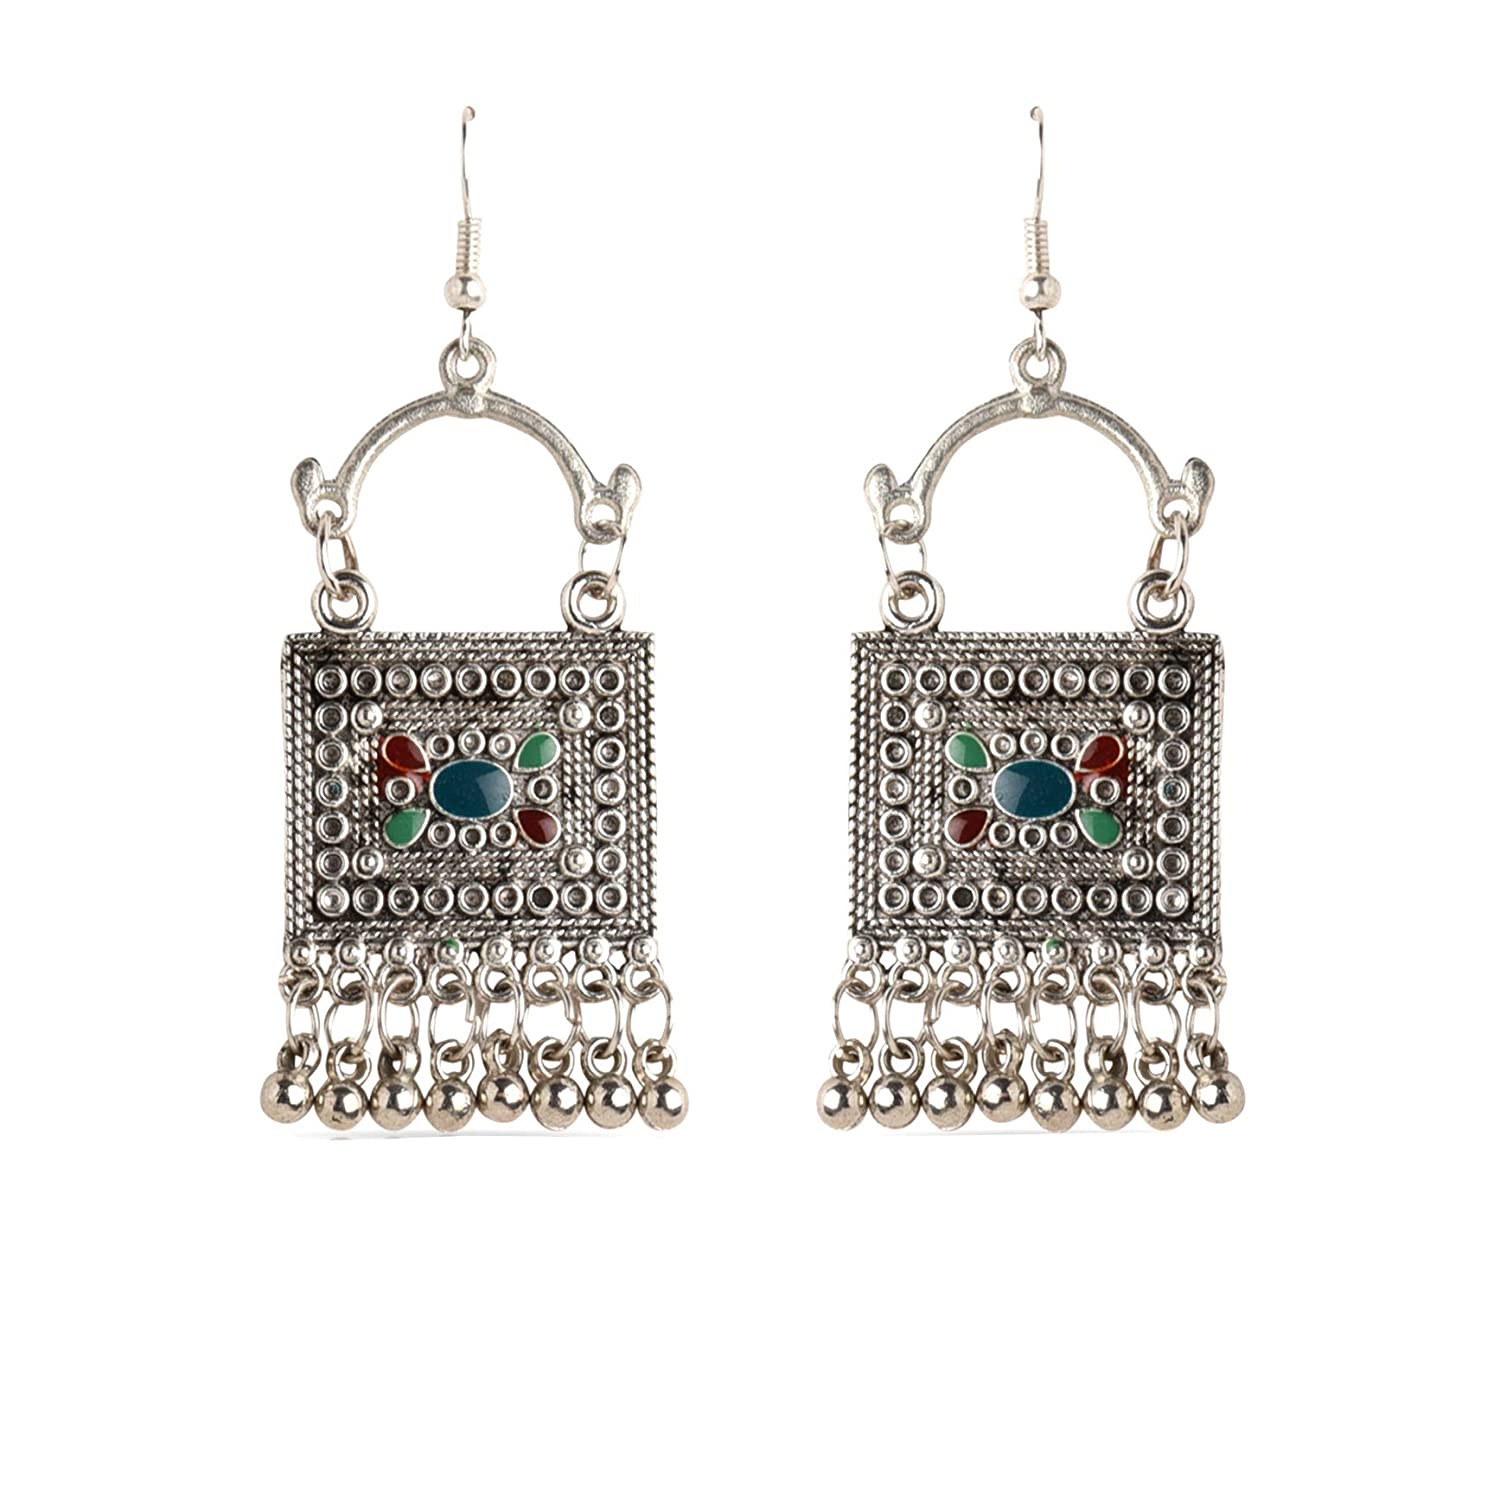 484a741f9 Nimmisha Drop Earring Jhumka/Jhumki Classic Designer Fancy Earring Chandbali  Antique Oxidised Silver Square Inlay Flower Tassel Earrings for Womens and  ...